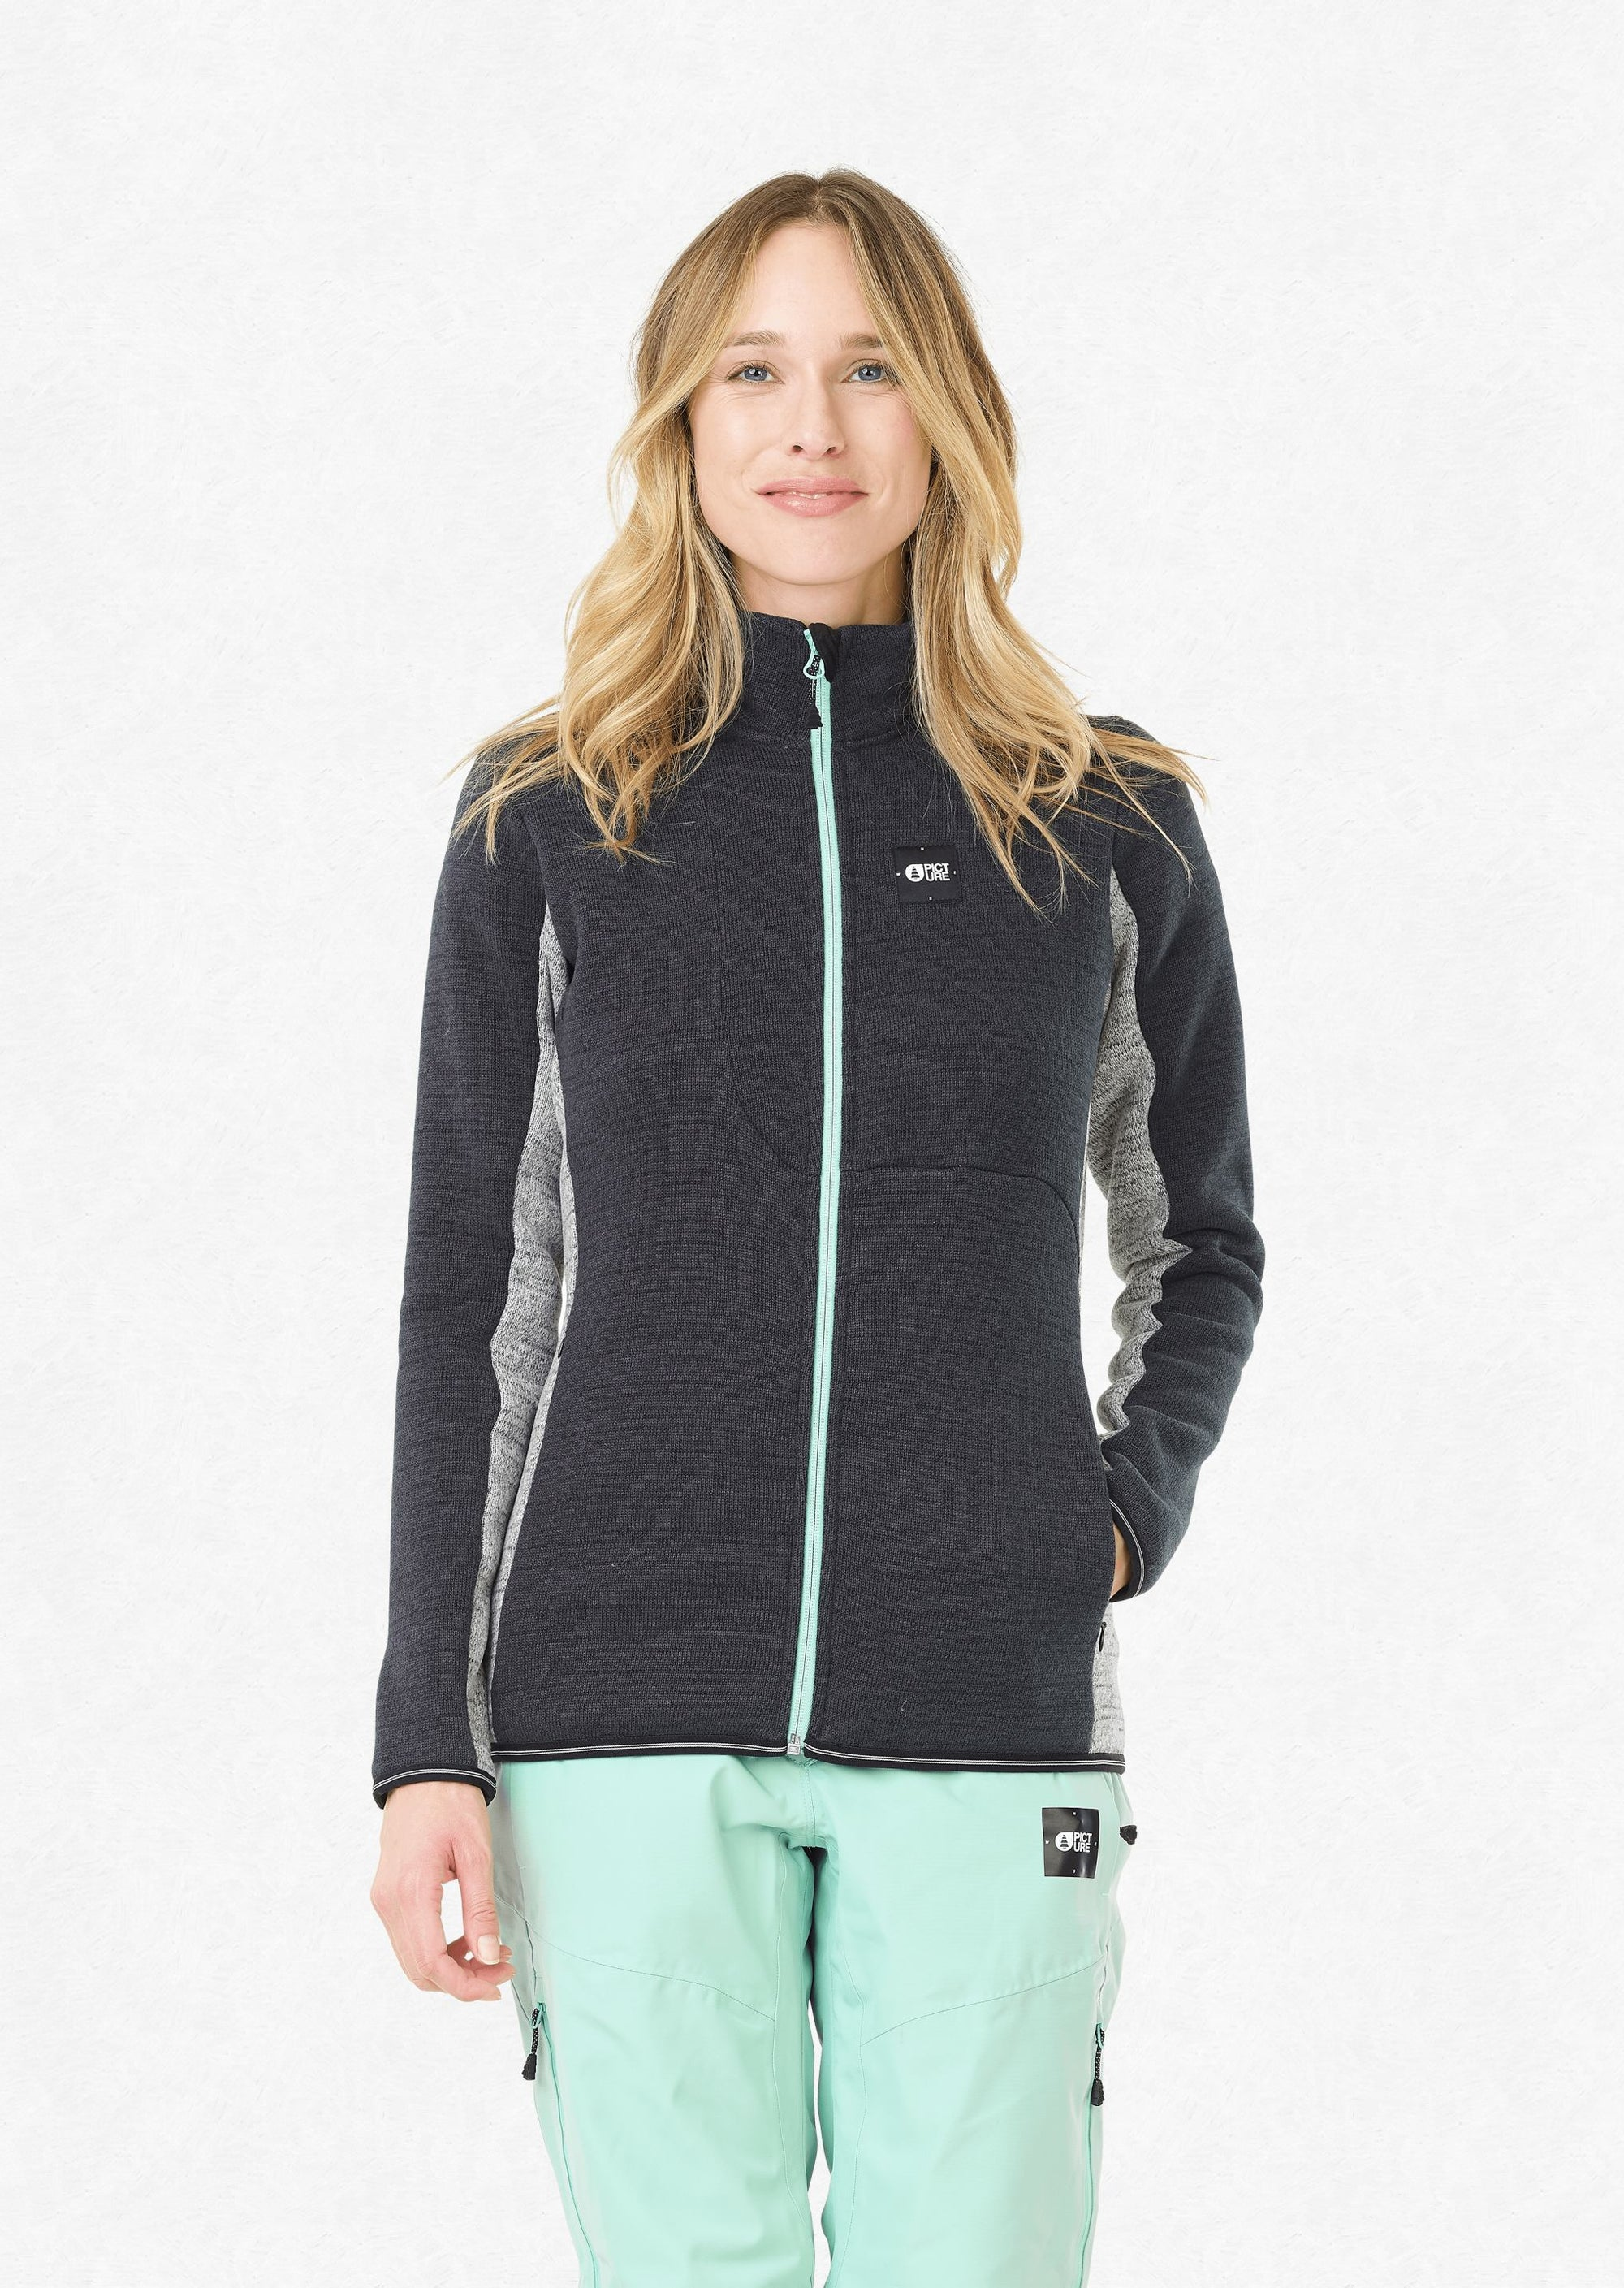 Picture Organic - Women's Wakay Jacket - Black - Recycled Polyester - Weekendbee - sustainable sportswear